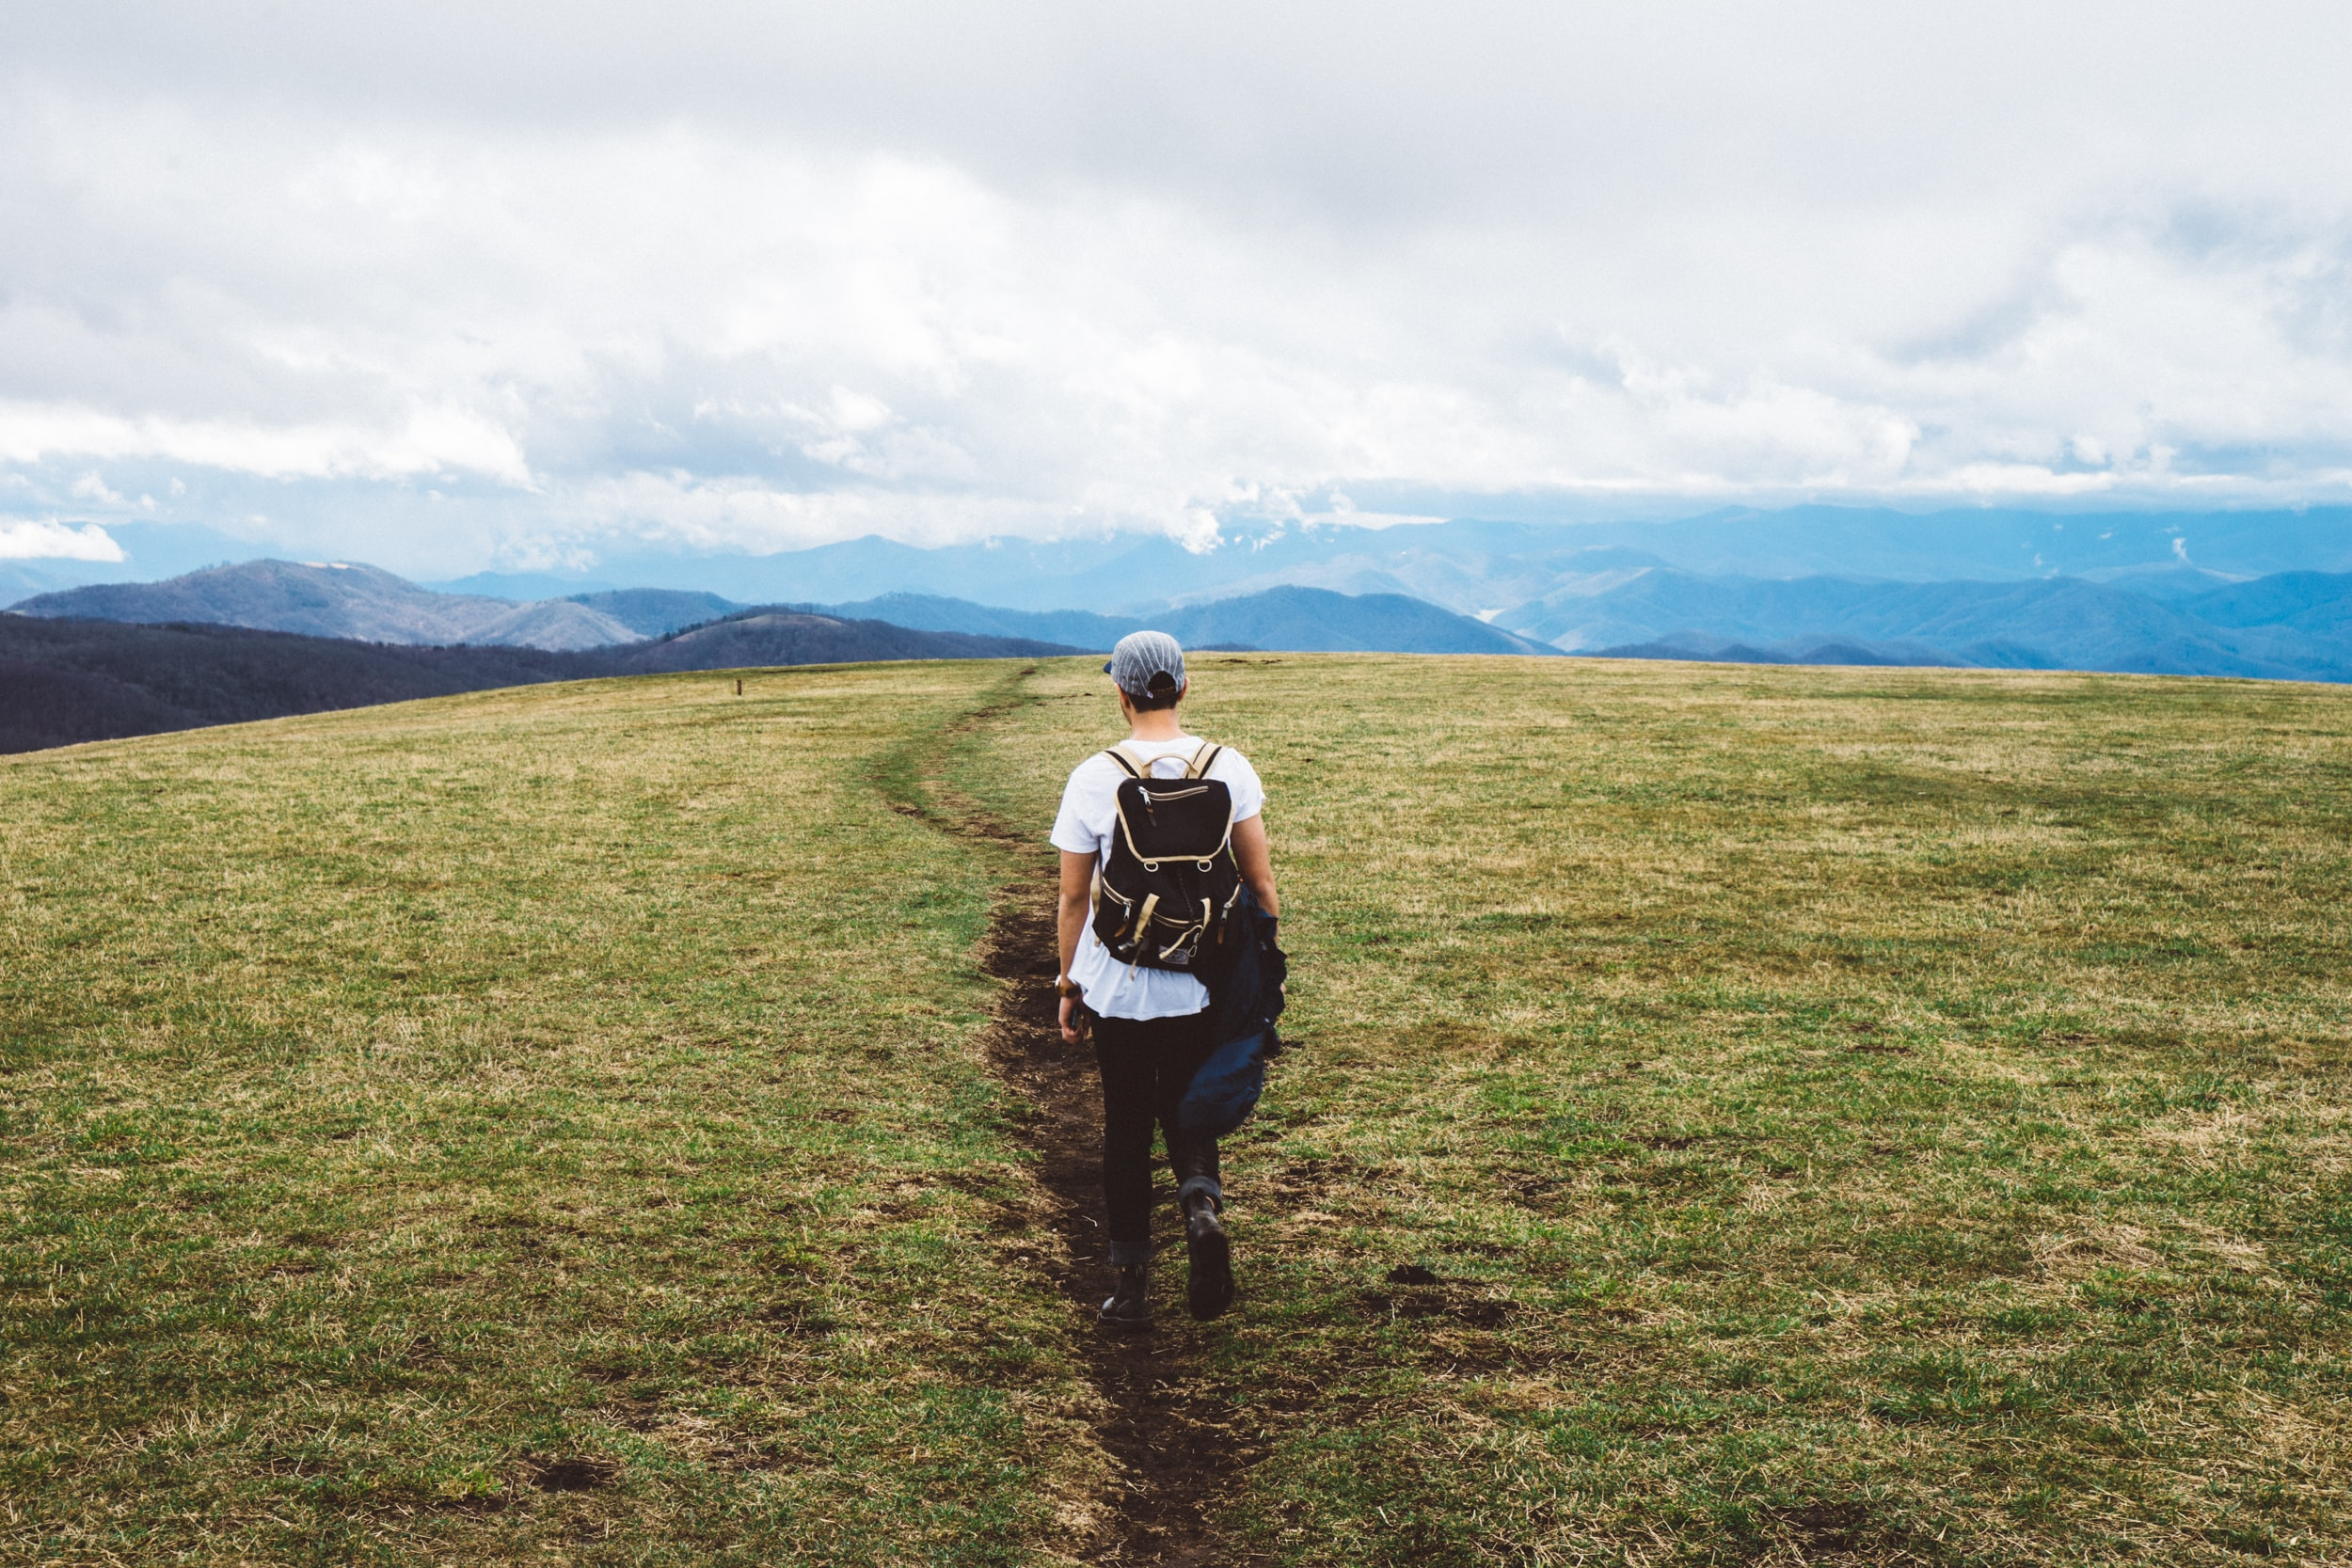 Man wearing a hat and backpack hikes away from the camera in green grass, toward mountains